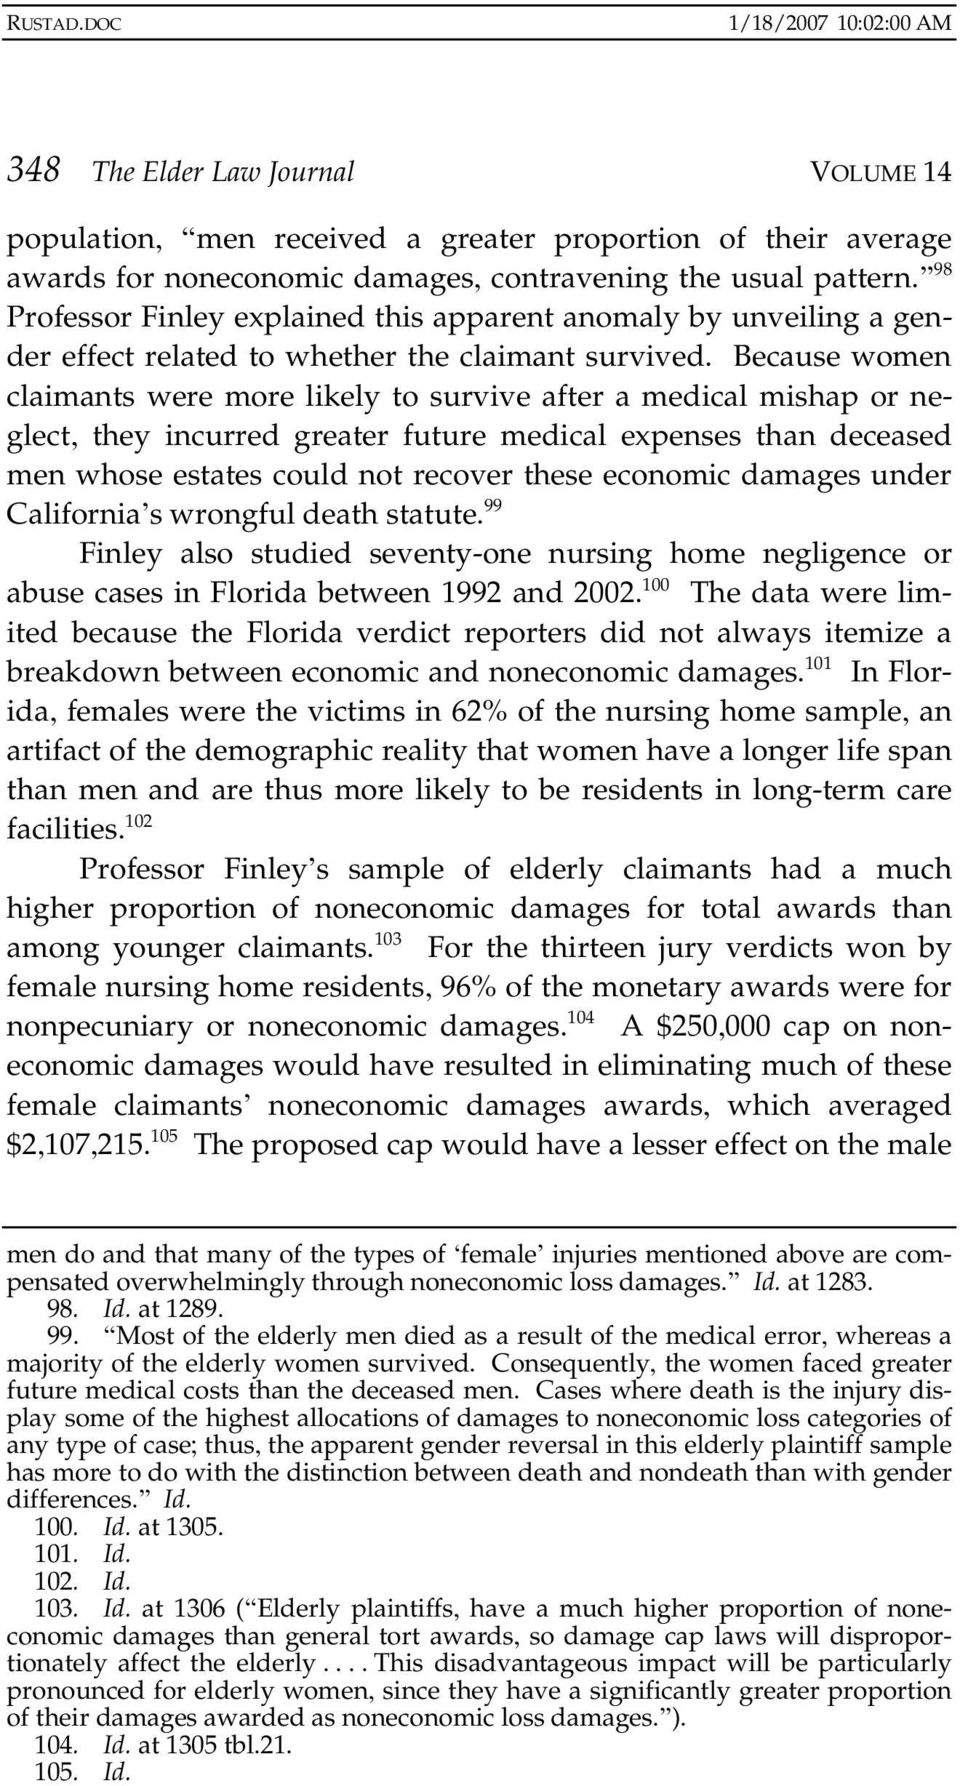 Because women claimants were more likely to survive after a medical mishap or neglect, they incurred greater future medical expenses than deceased men whose estates could not recover these economic